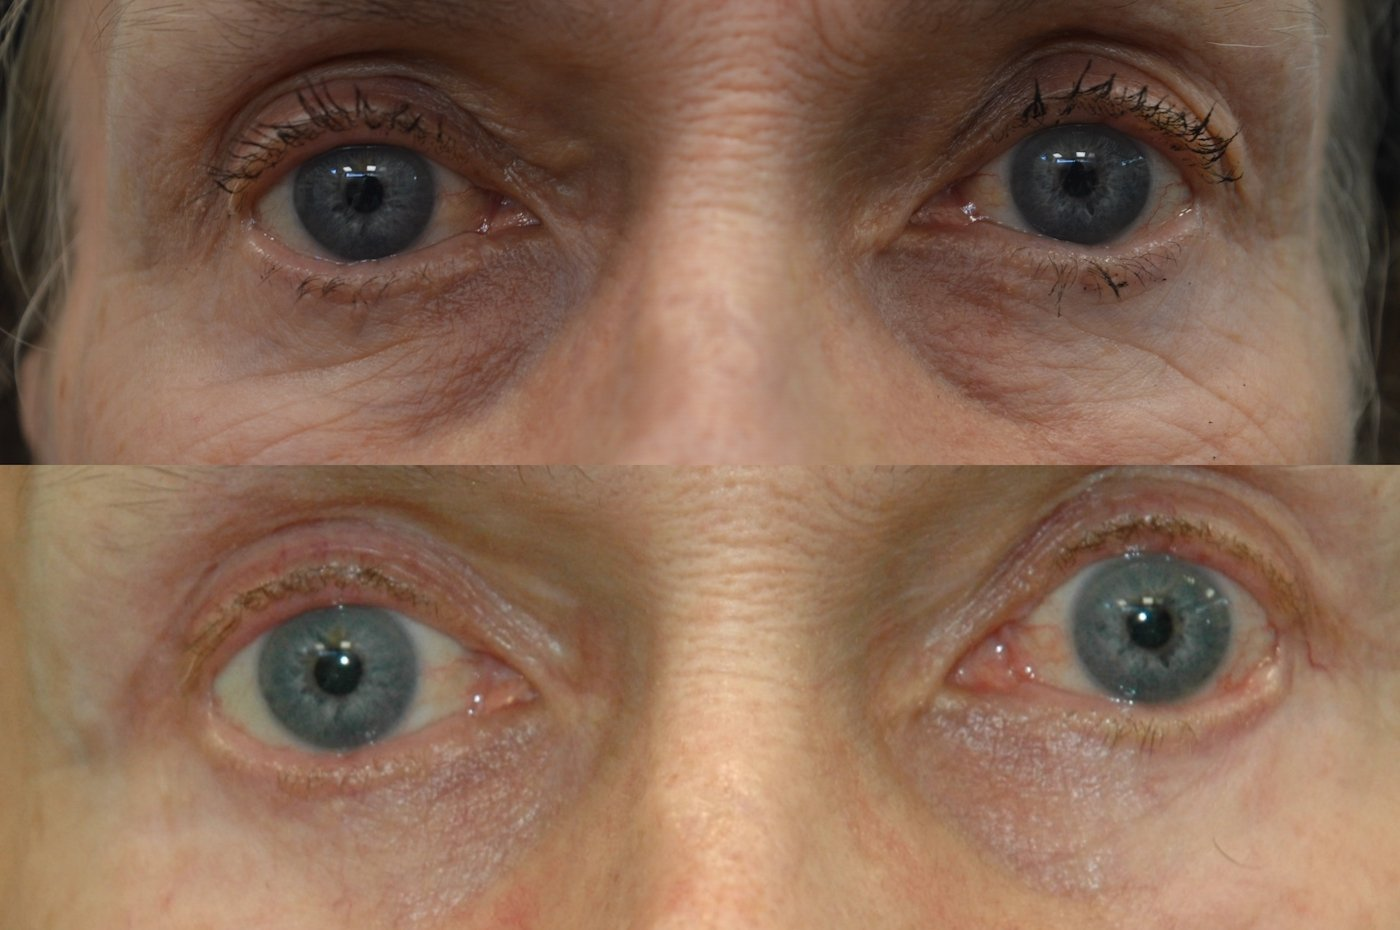 Upper and Lower Blepharoplasty 8 months after